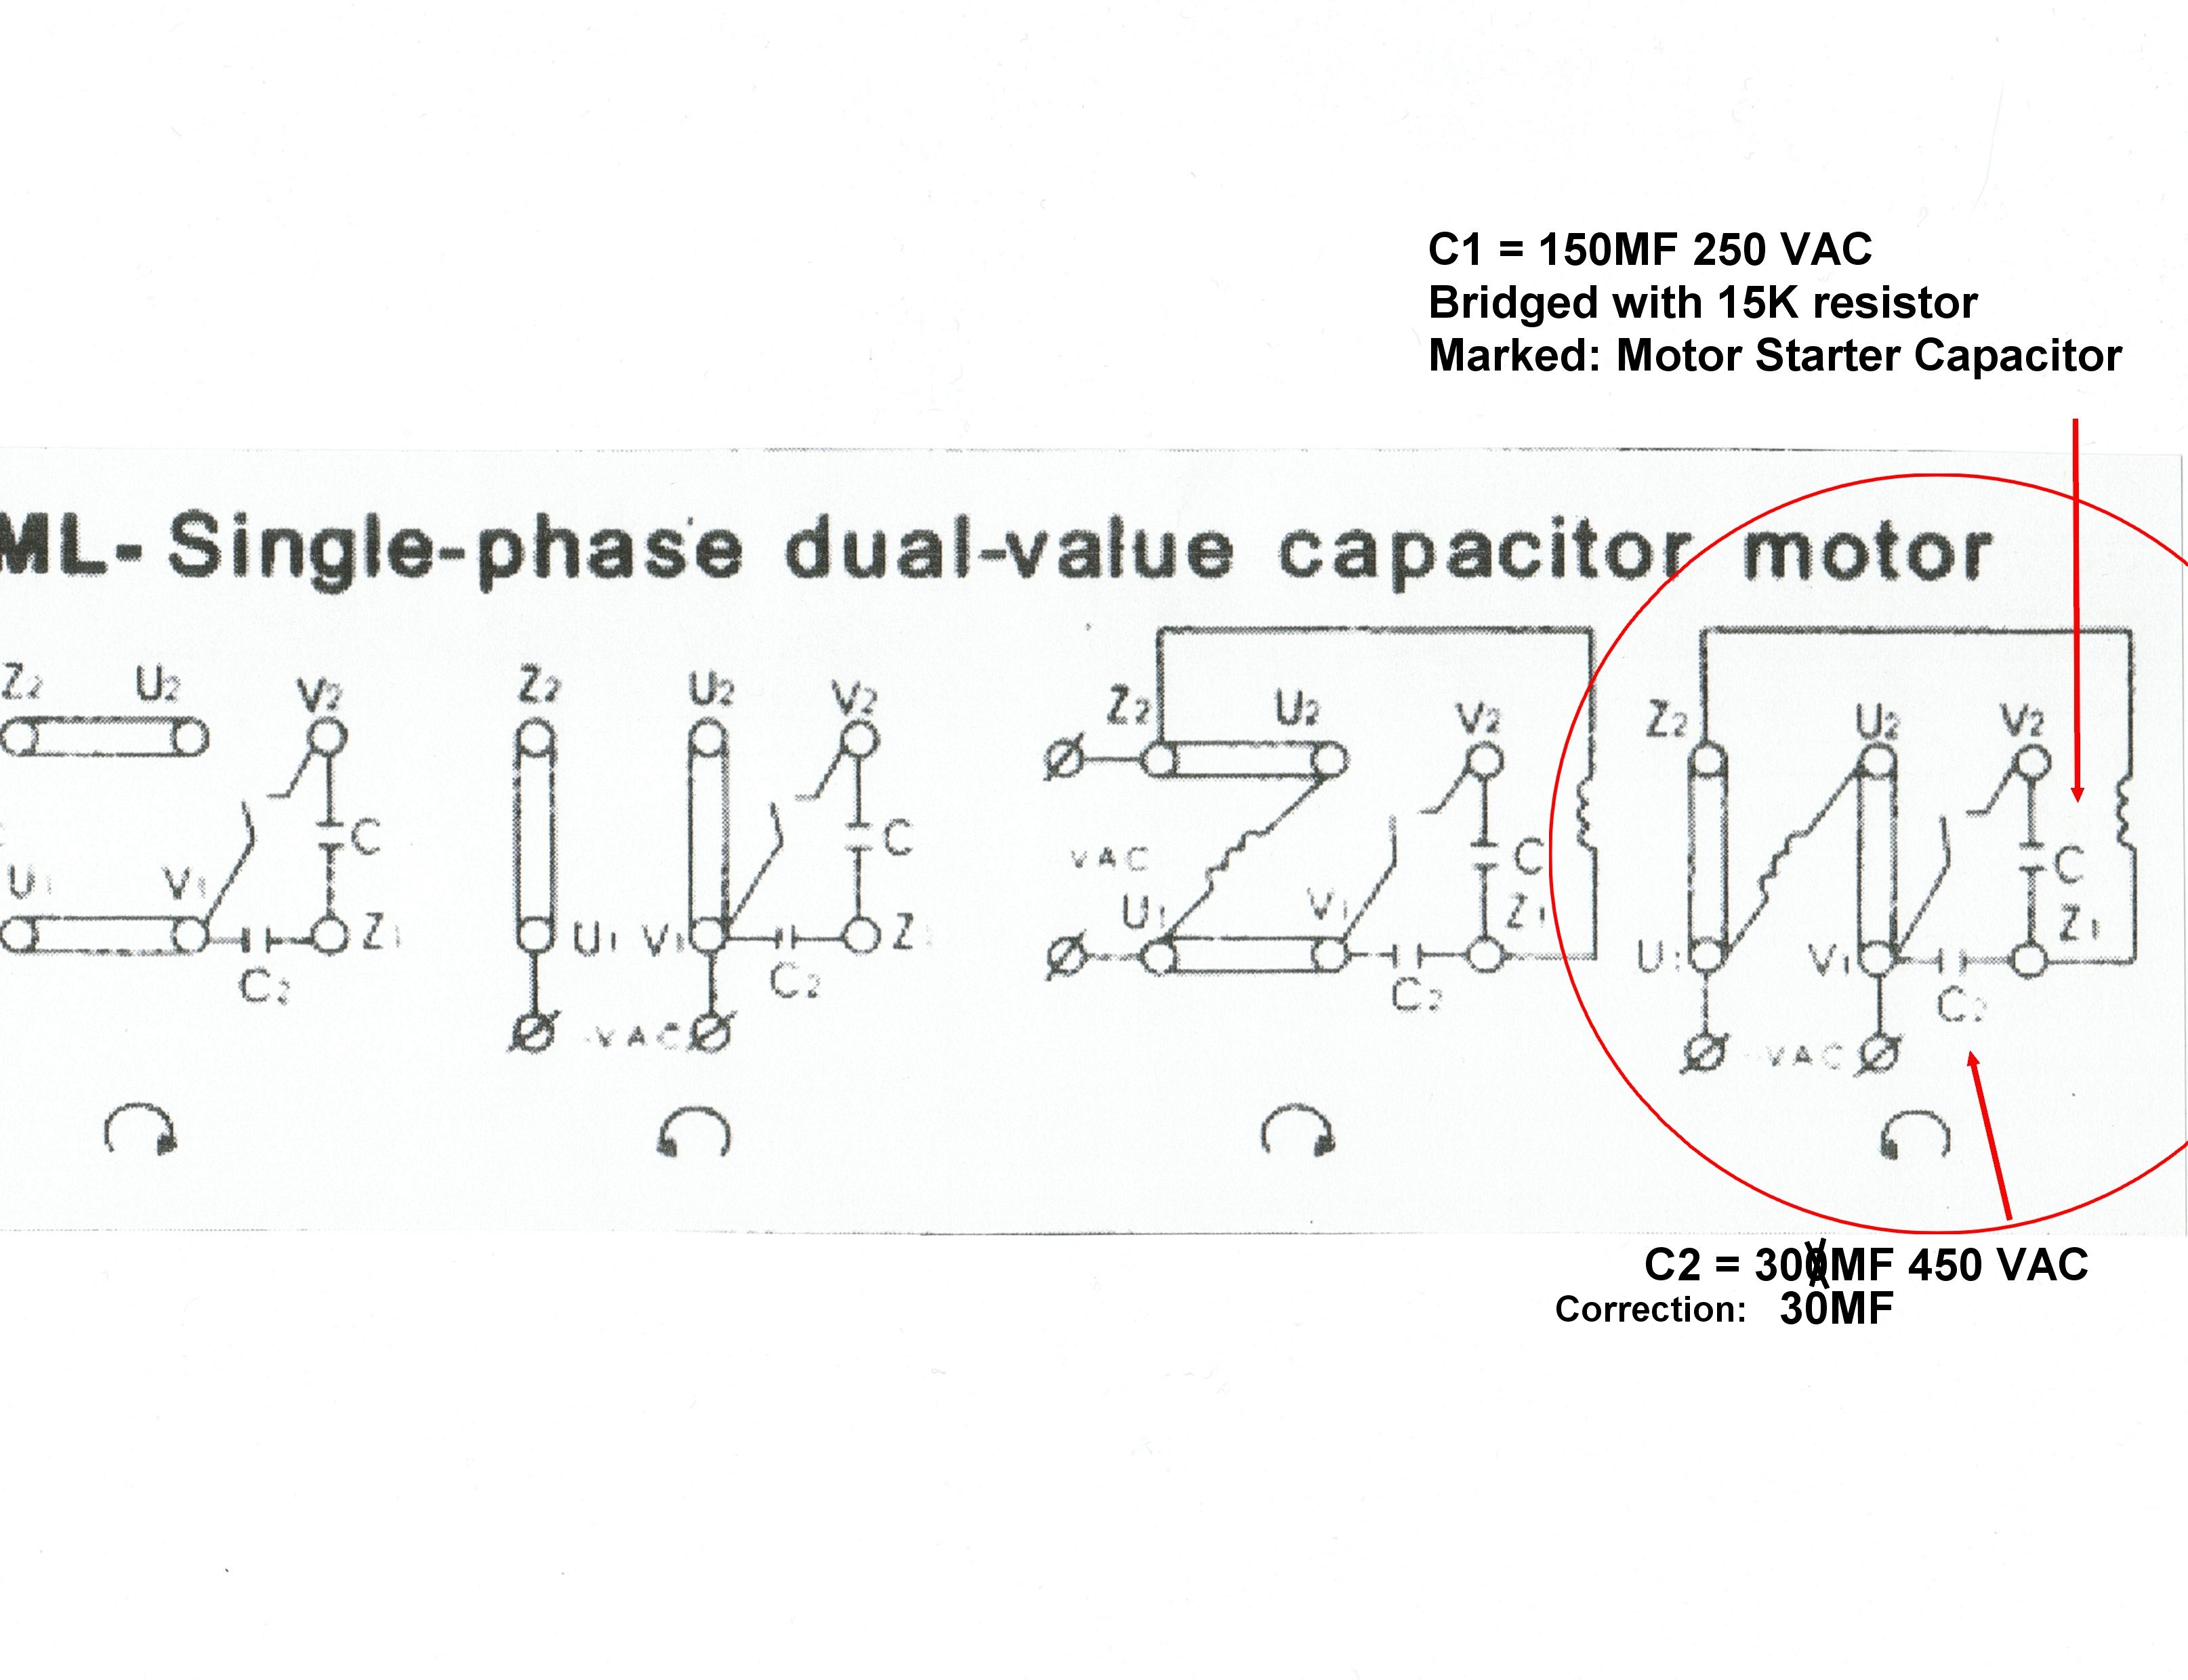 220v motor connection diagram electrical diagram schematics rh zavoral genealogy com